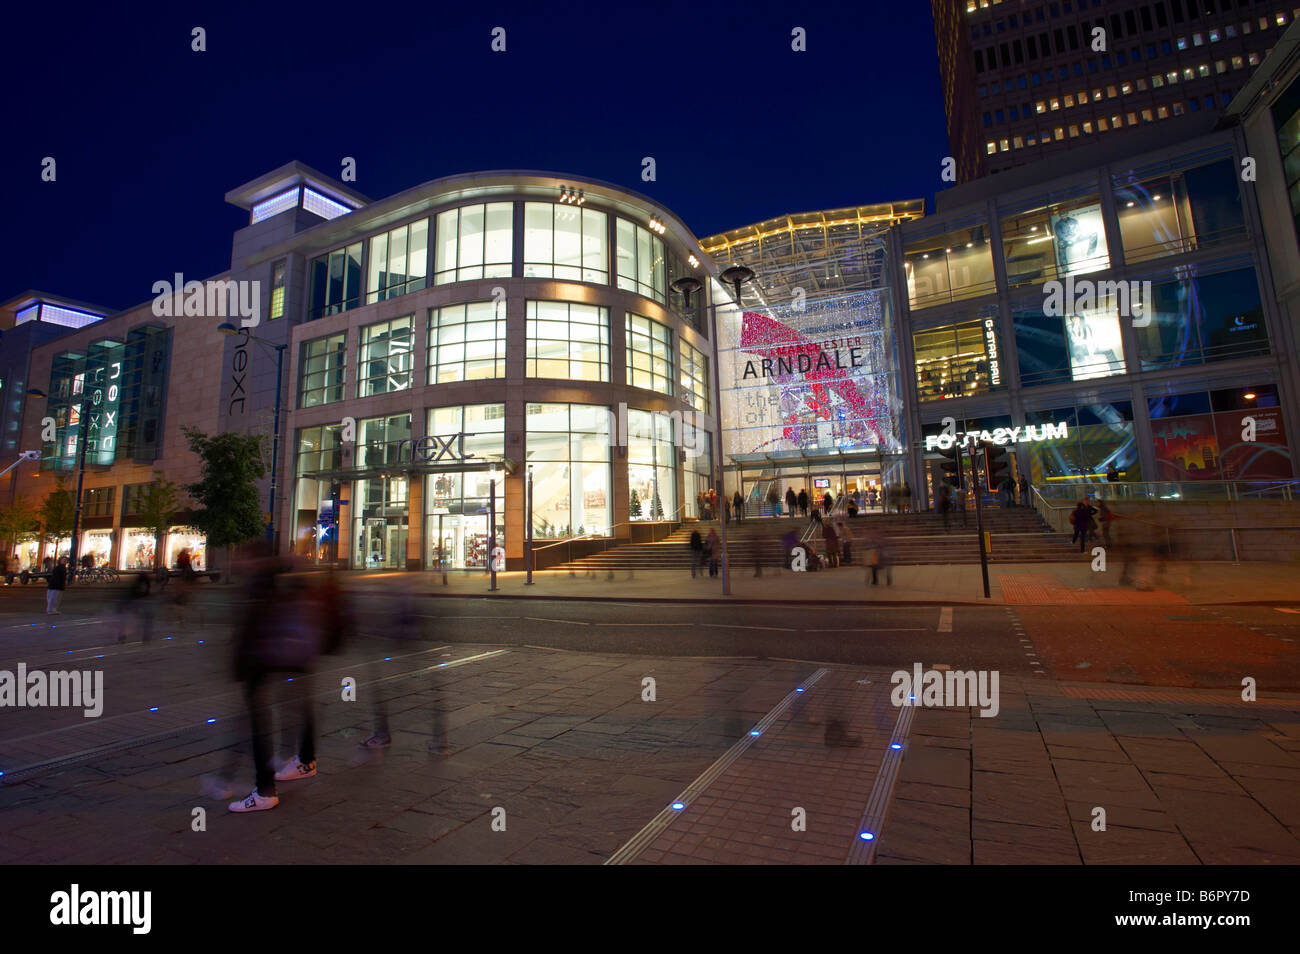 Manchester Arndale Centre At Night - Stock Image